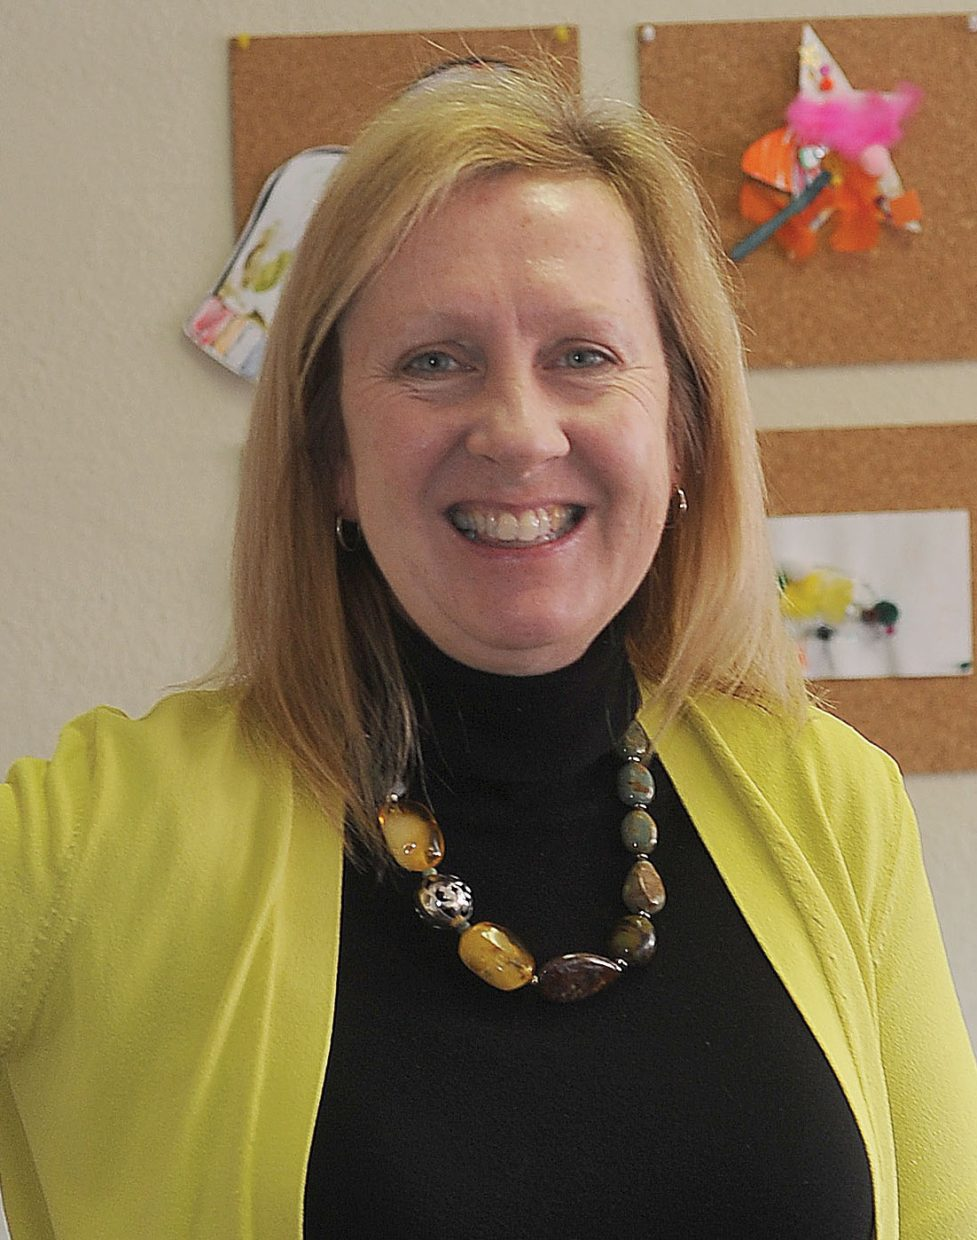 Northwest Colorado BOCES Executive Director Amy Bollinger has announced she will leave the organization when her current contract expires June 30. A search is underway for her replacement.